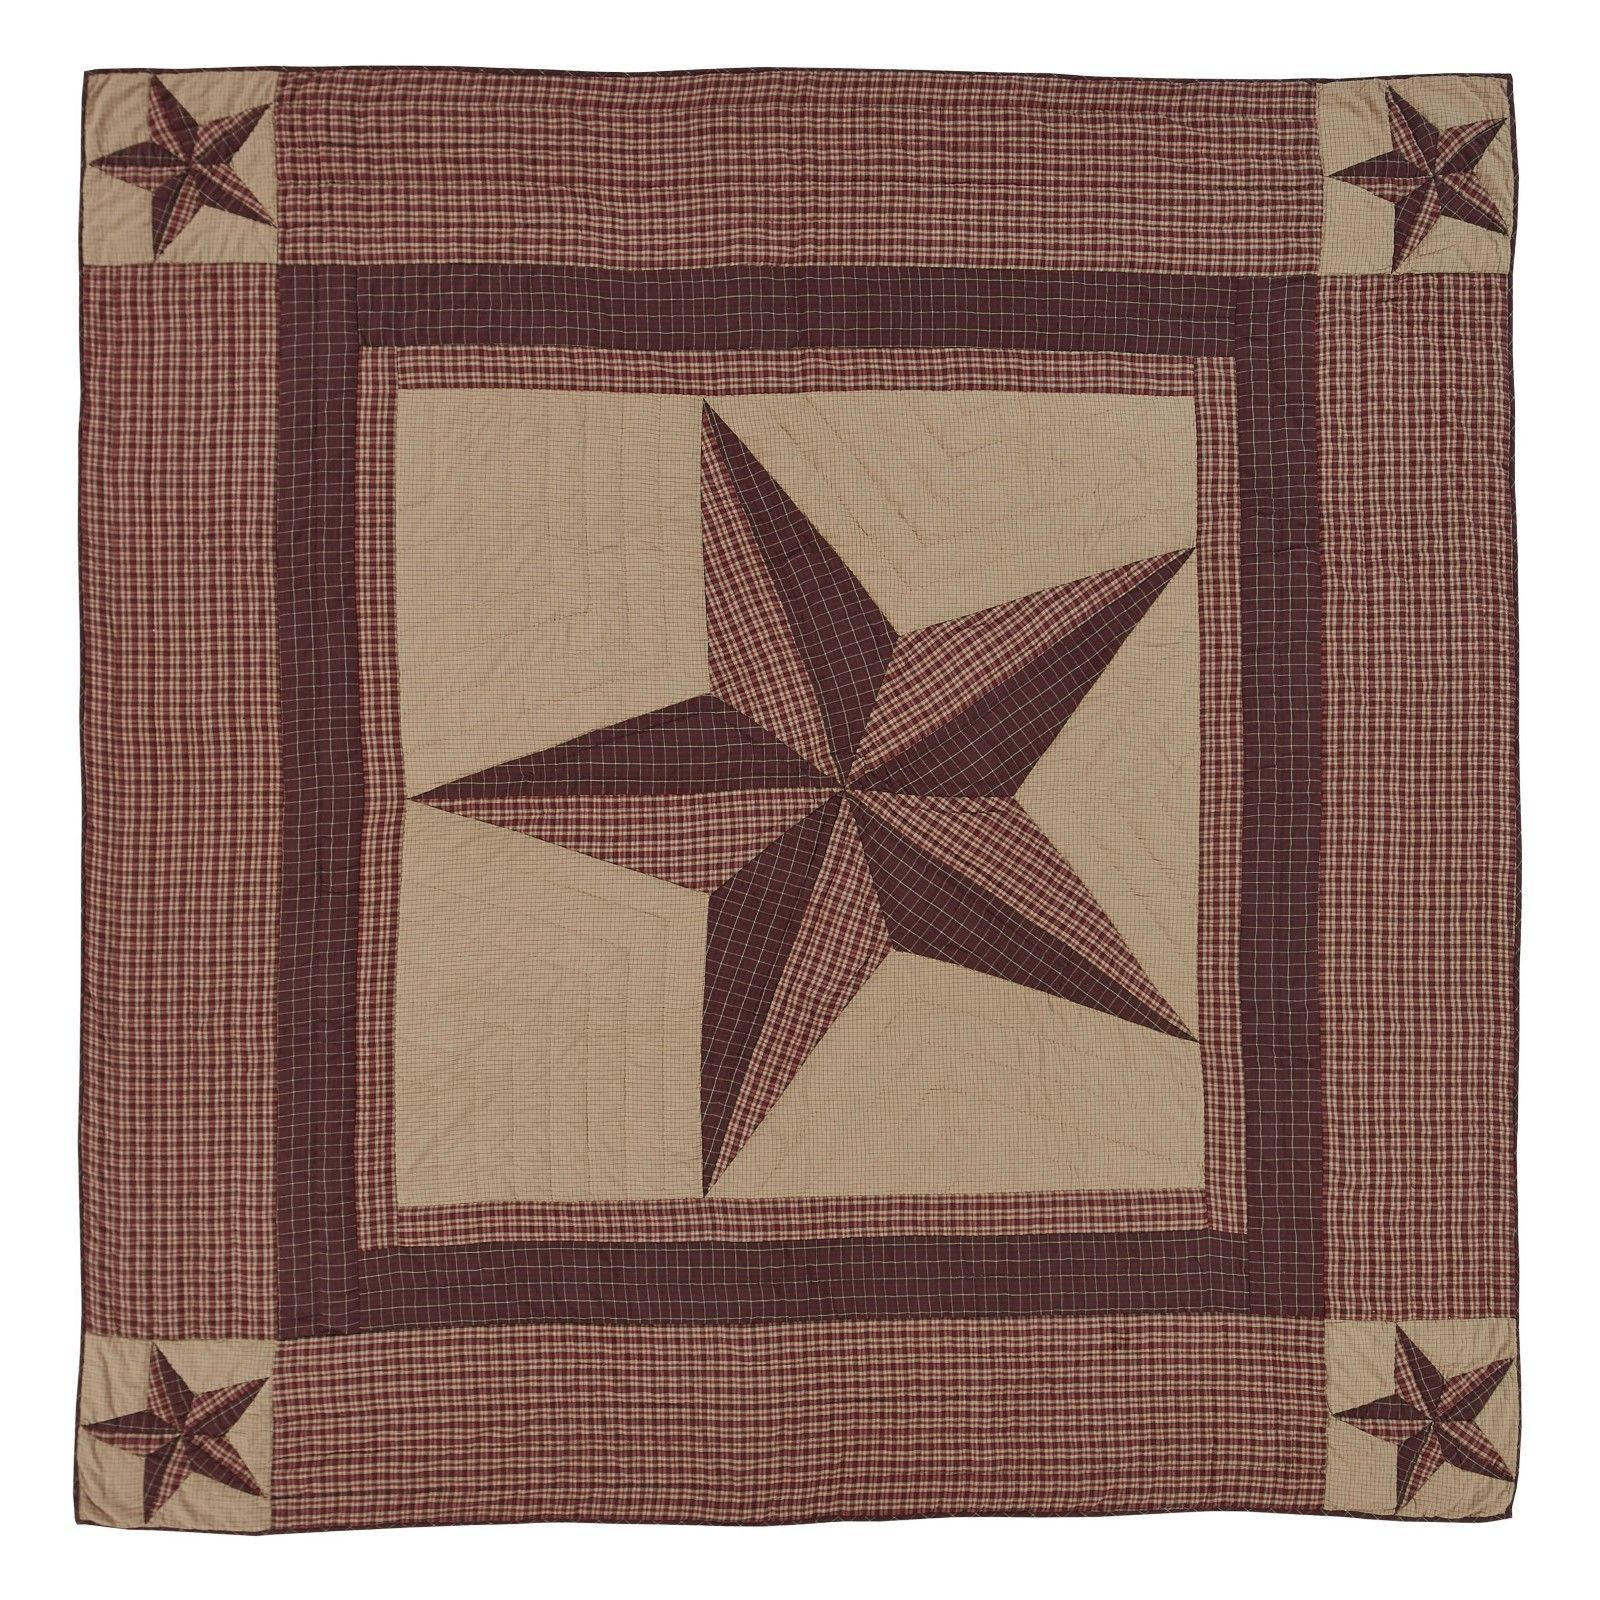 Landon Luxury California King Quilt - Patchwork Texas Star - Red, Brown, Khaki